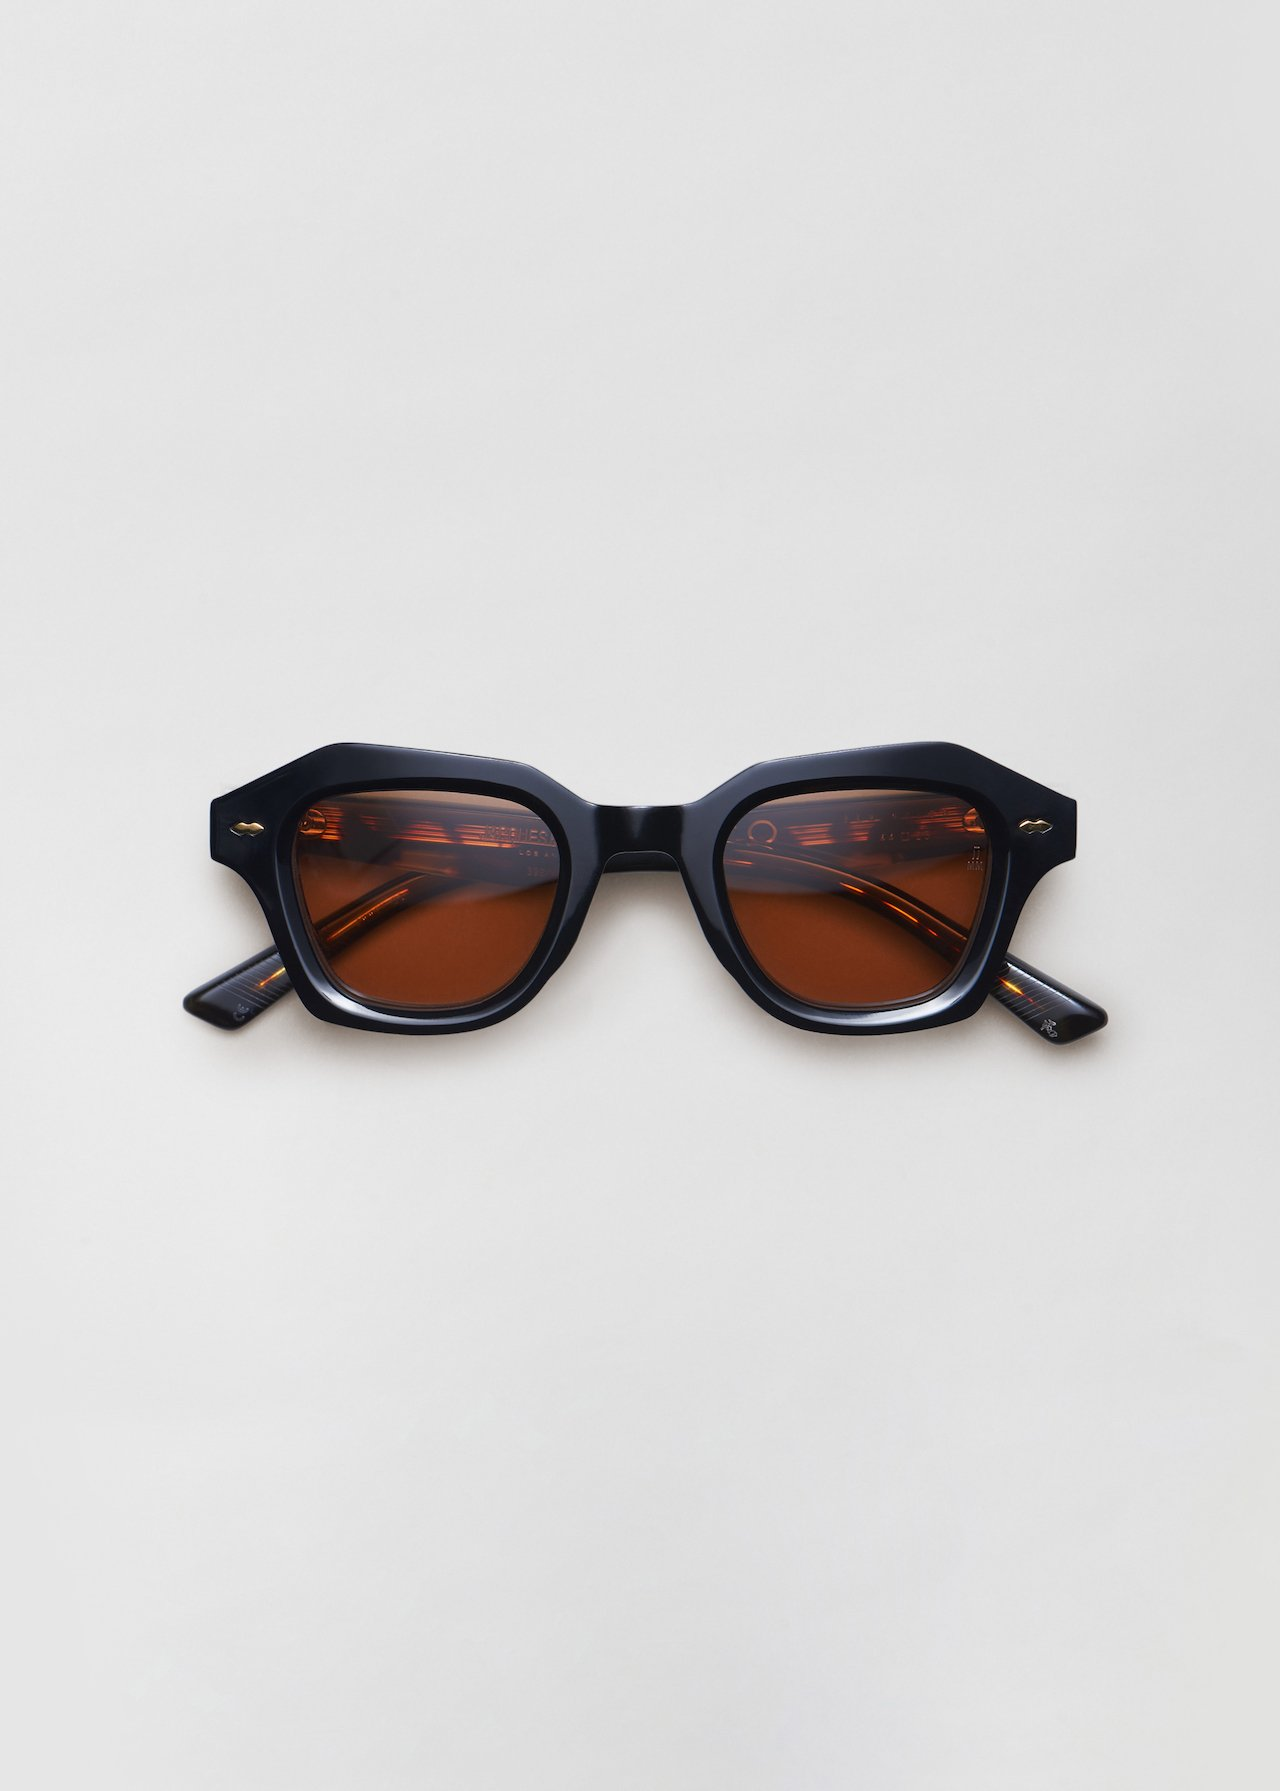 Schindler Sunglasses in Lava in Noir by Co Collections